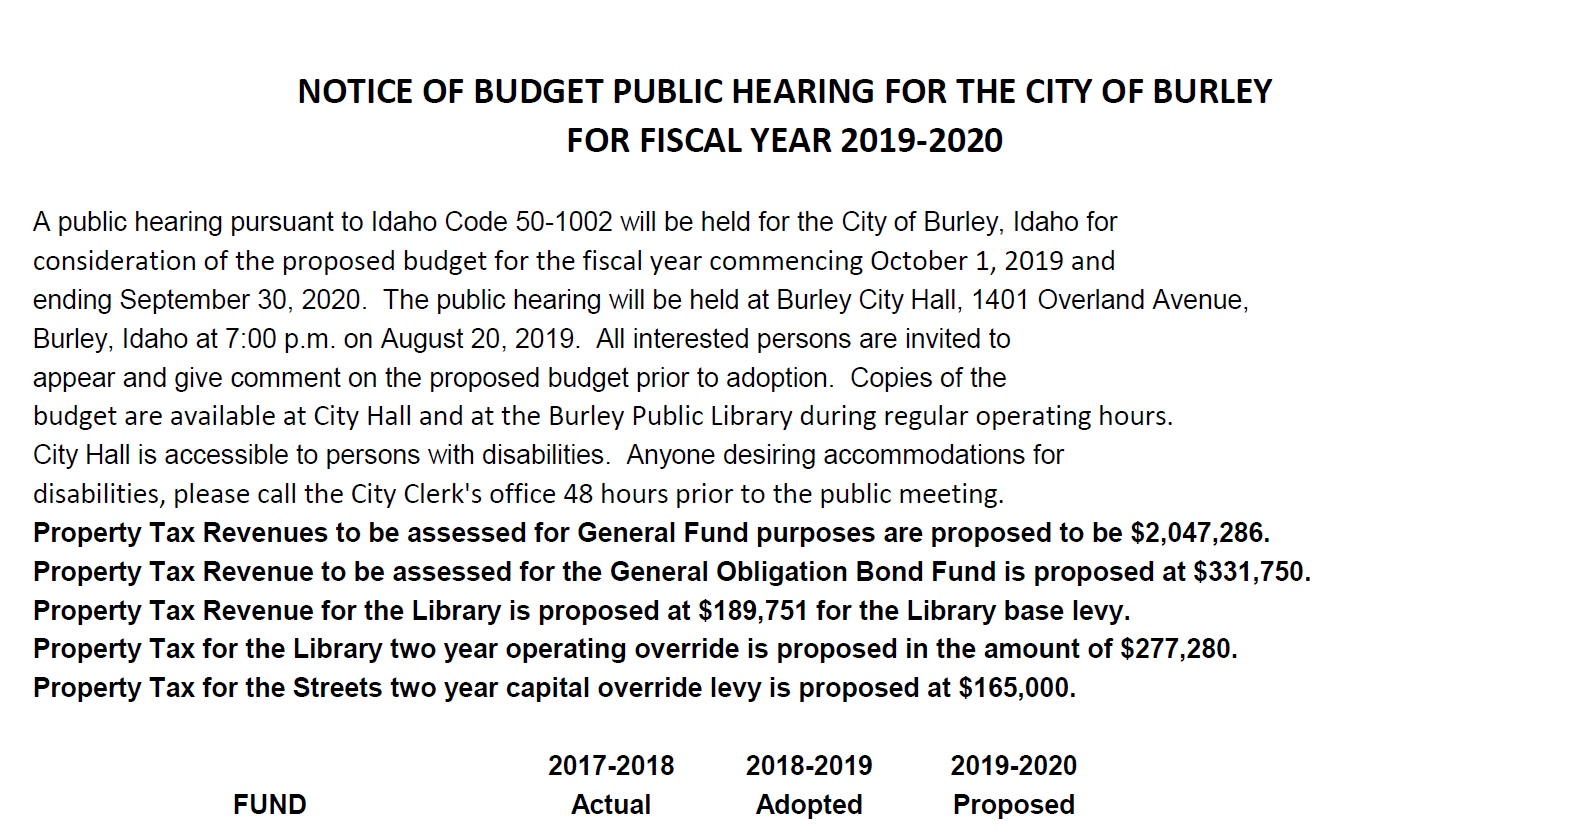 Budget Hearing for 2019-2020